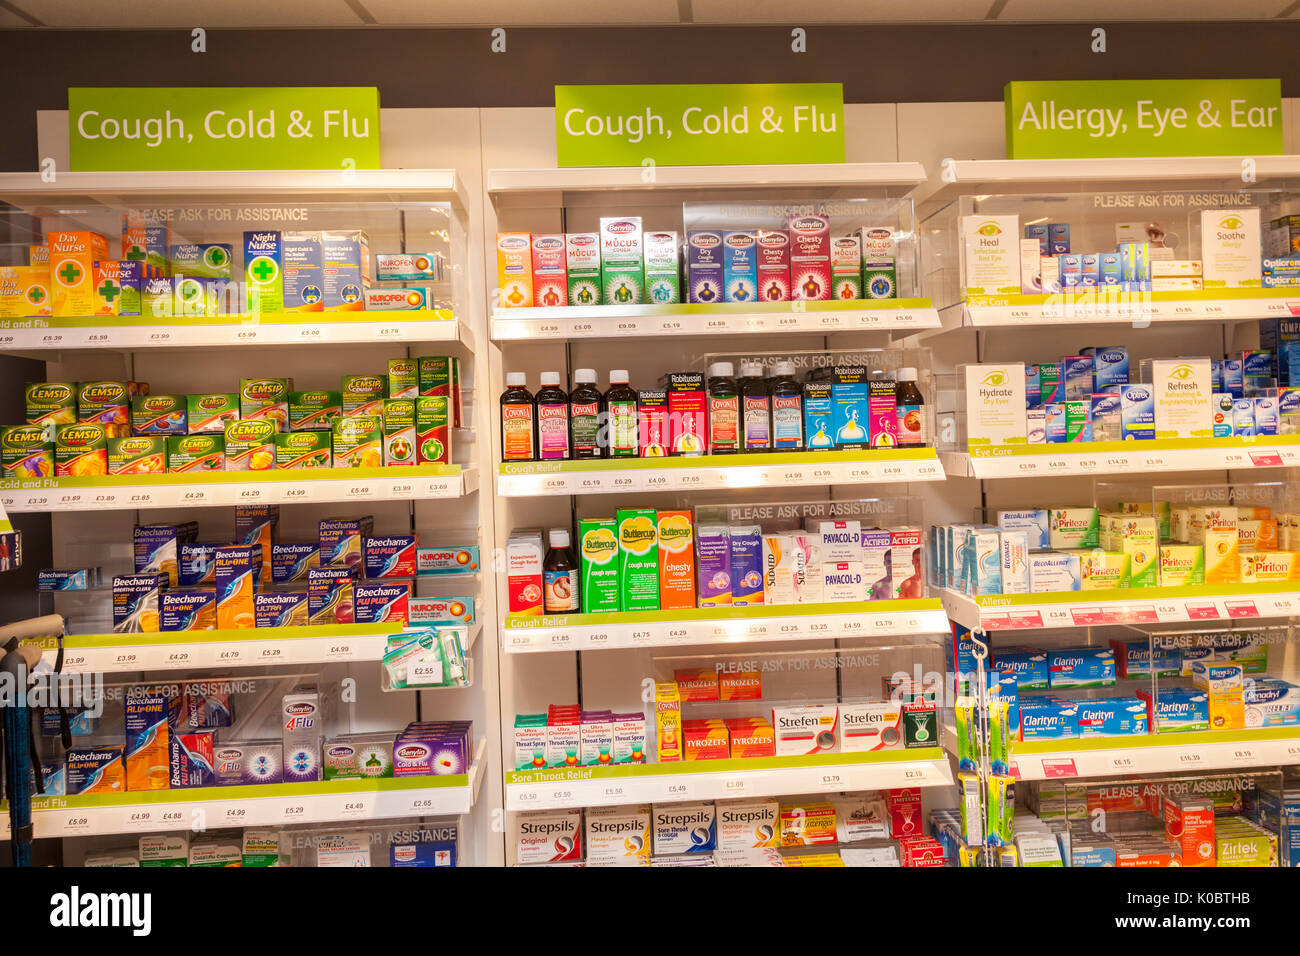 Cough cold and flu remedies in a chemist shop,pharmacy shelf,pharmacists,drug store - Stock Image